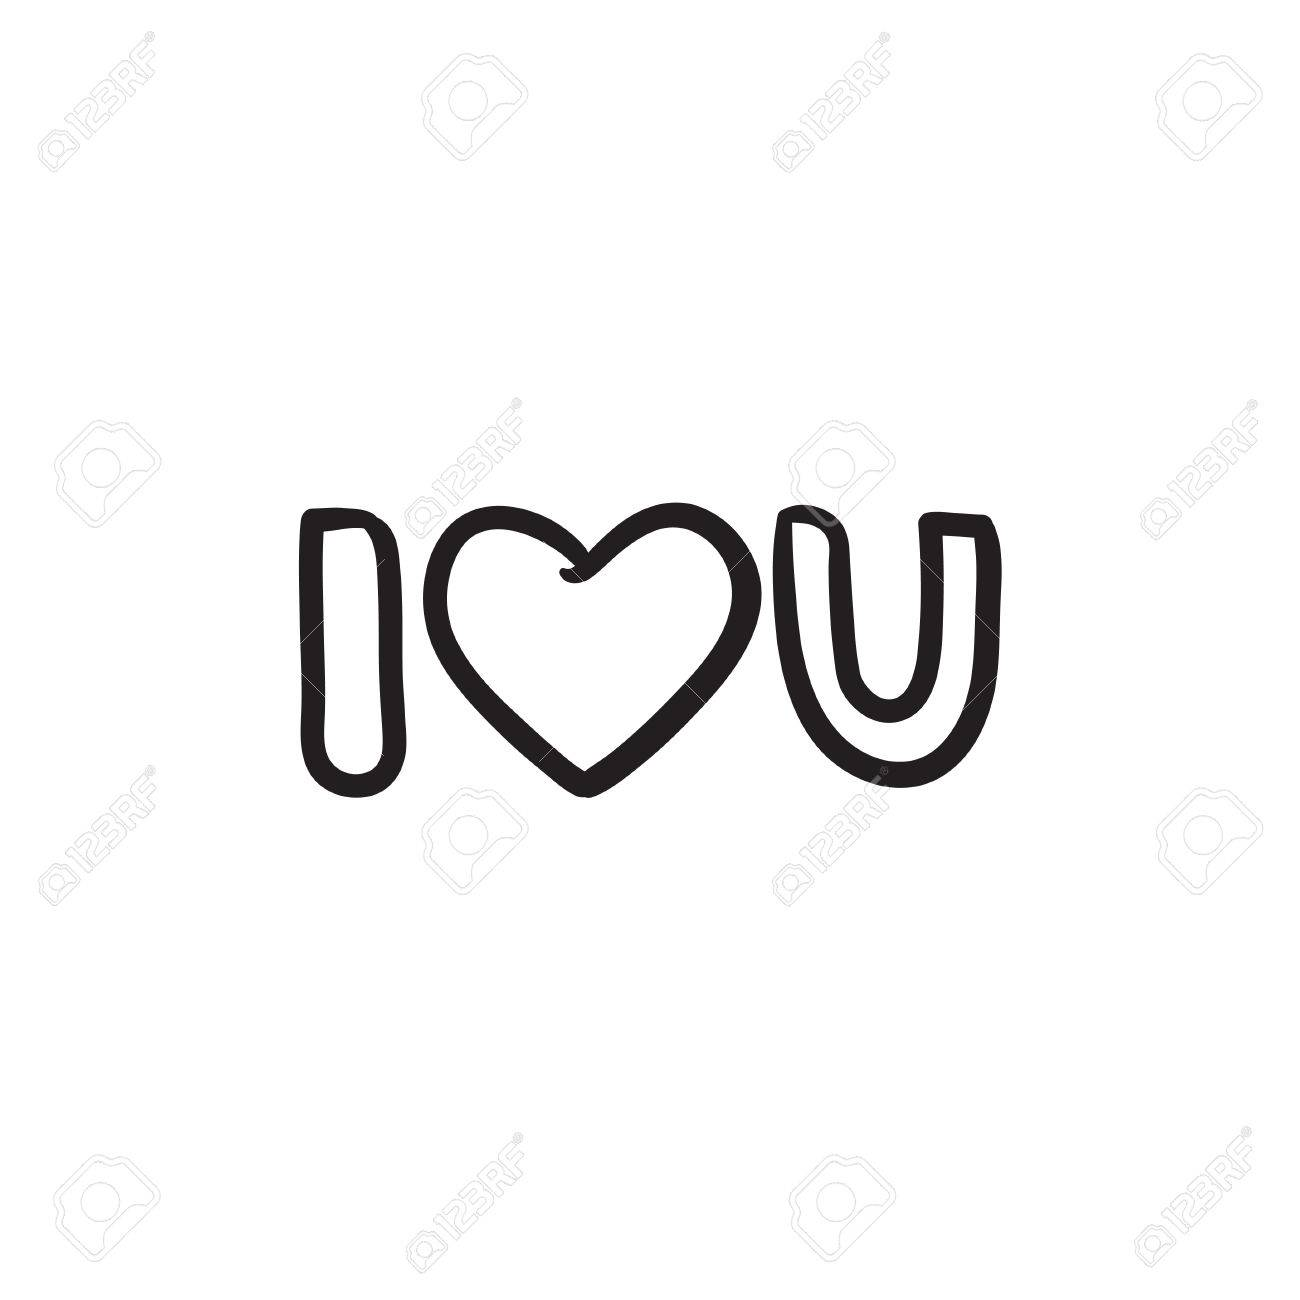 Abbreviation i love you sketch icon stock vector 72427527